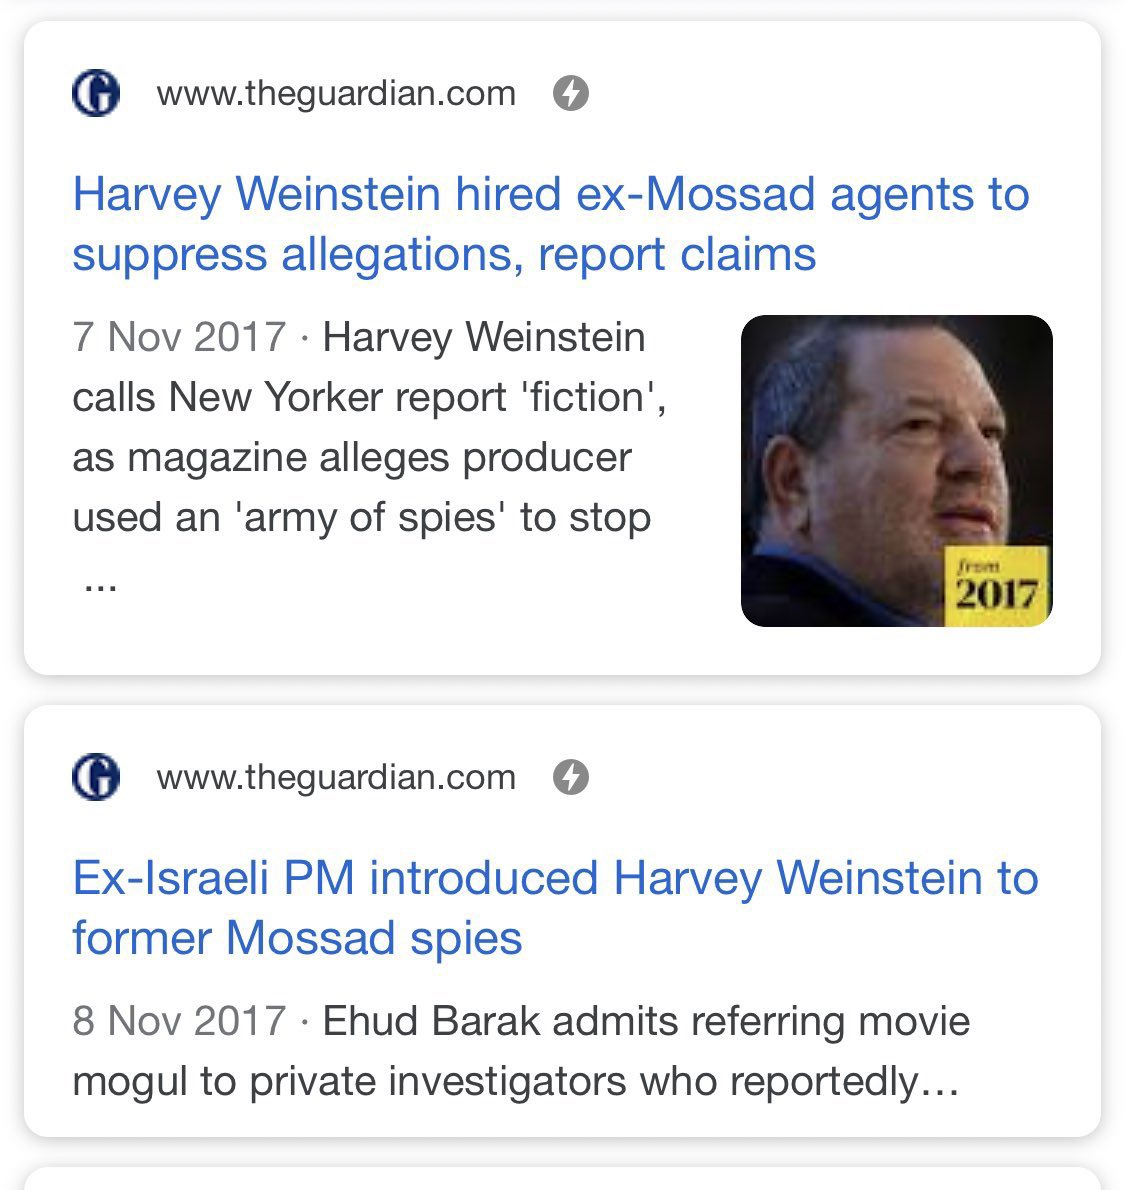 Remember it wasn't just #Epstein but also Weinstein that connections to Mossad and Israeli former PM Ehud Barack.